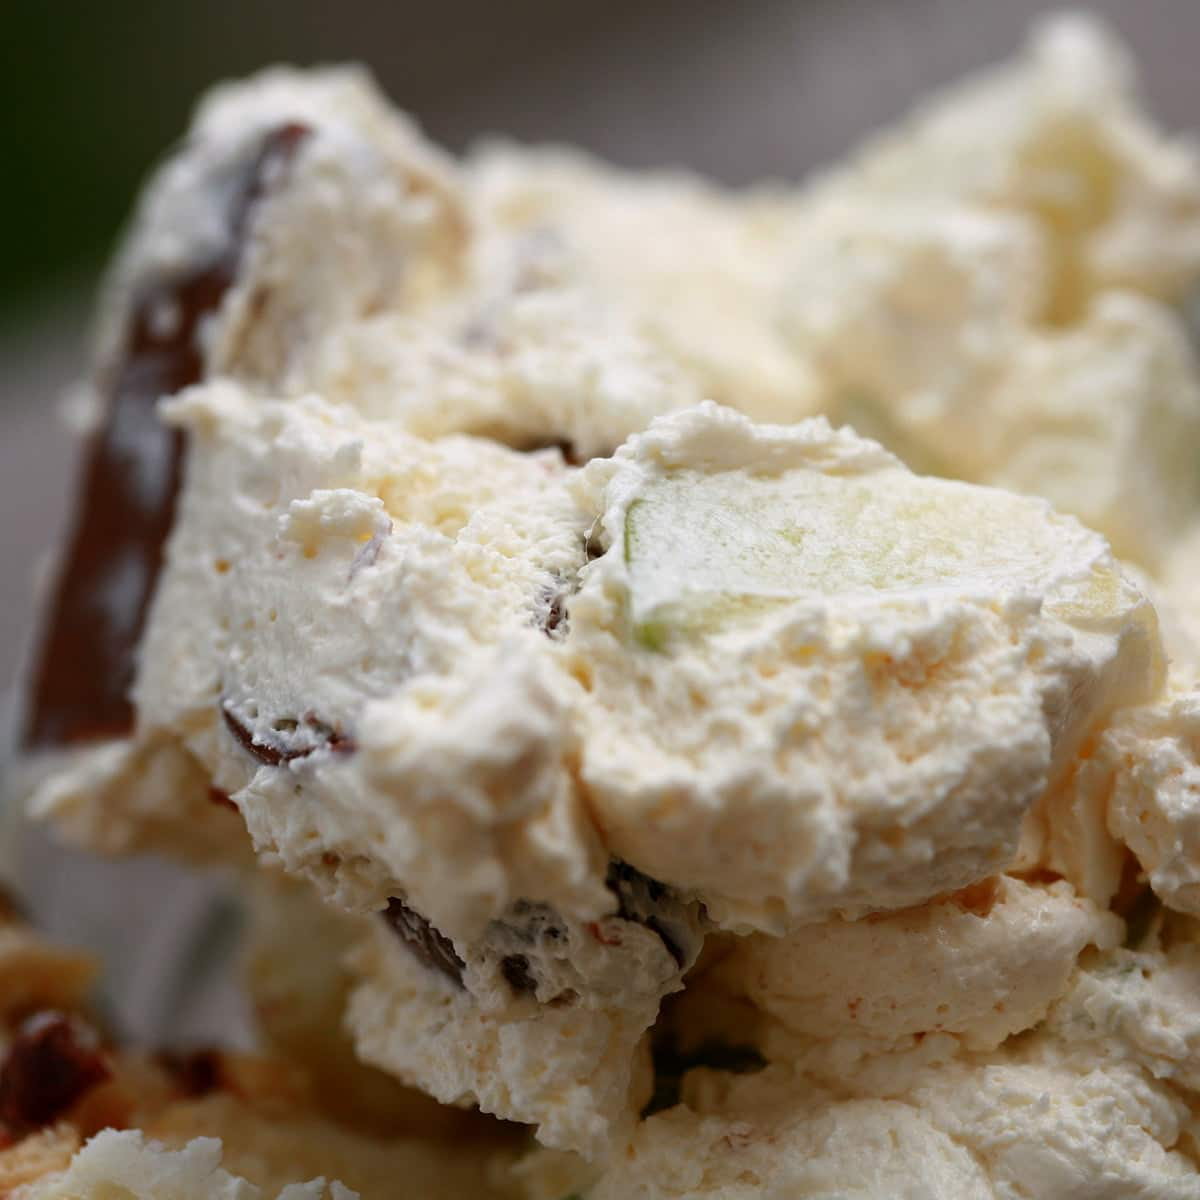 A fluted dessert bowl with Canadian Candy Bar Salad - an off-white, fluffy whipped cream based dessert with chunks of apple and candy bar visible throughout.